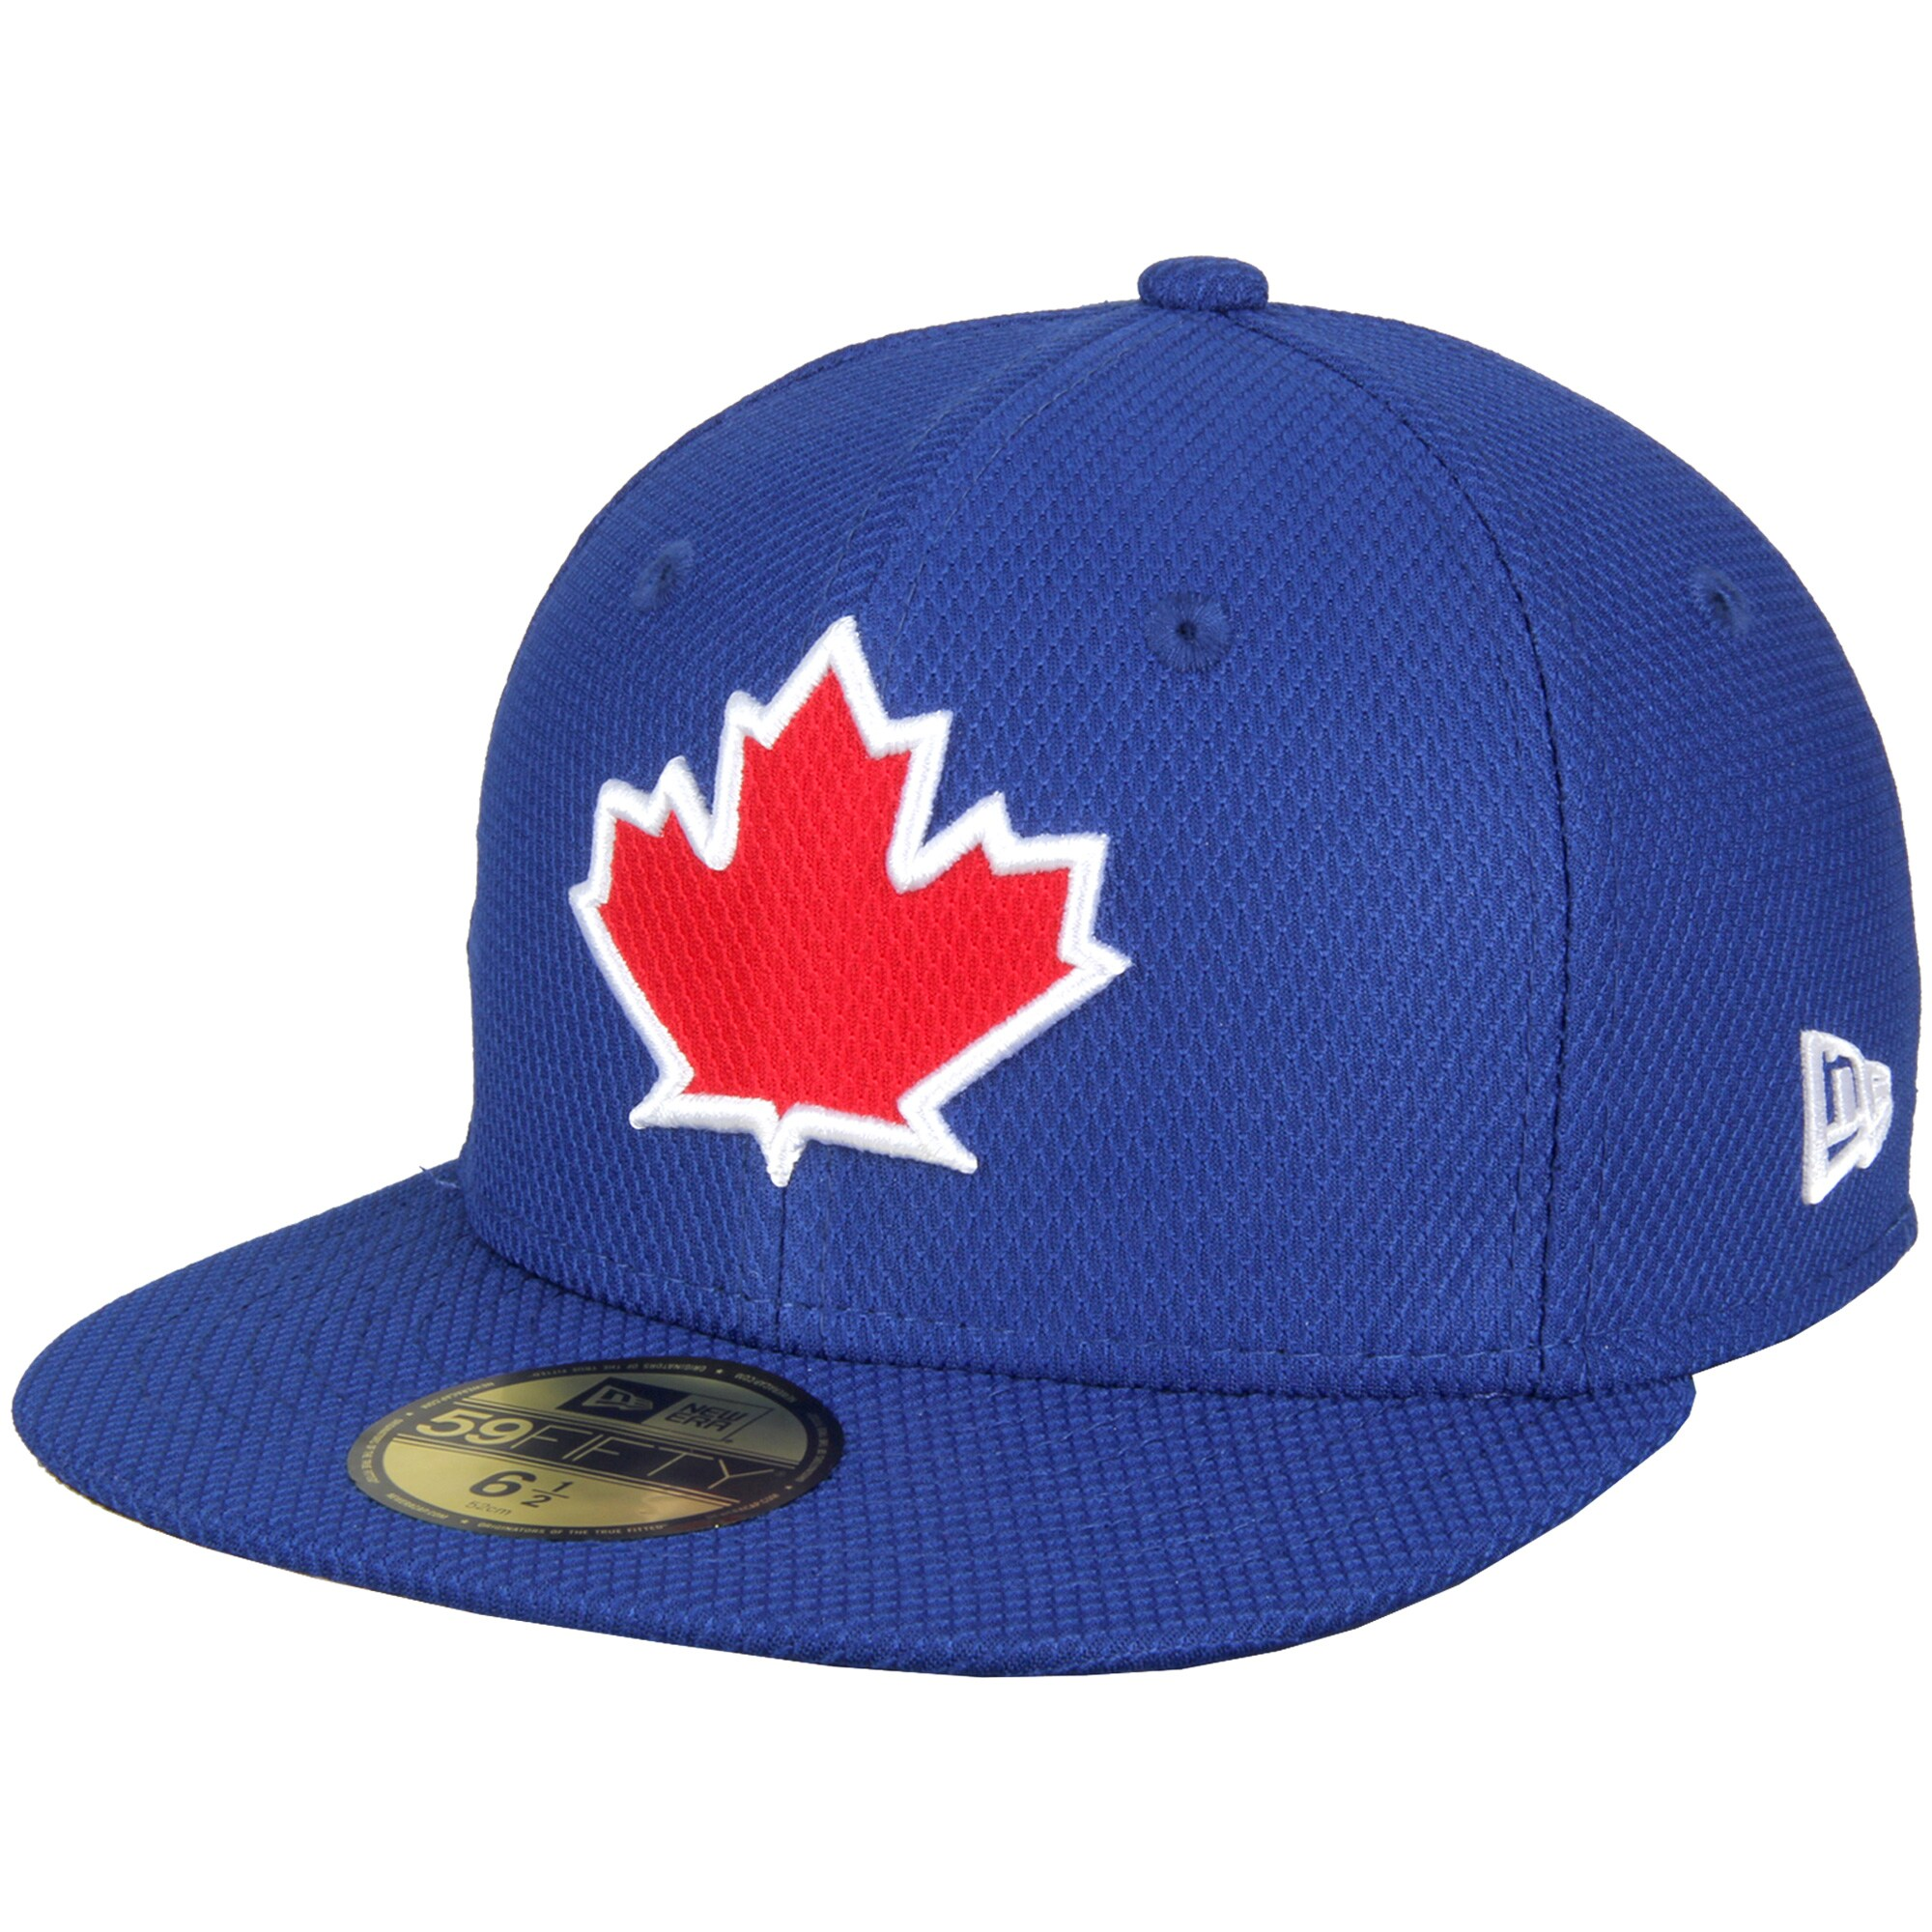 Toronto Blue Jays New Era Youth Authentic Collection On-Field Alternate 59FIFTY Fitted Hat - Royal